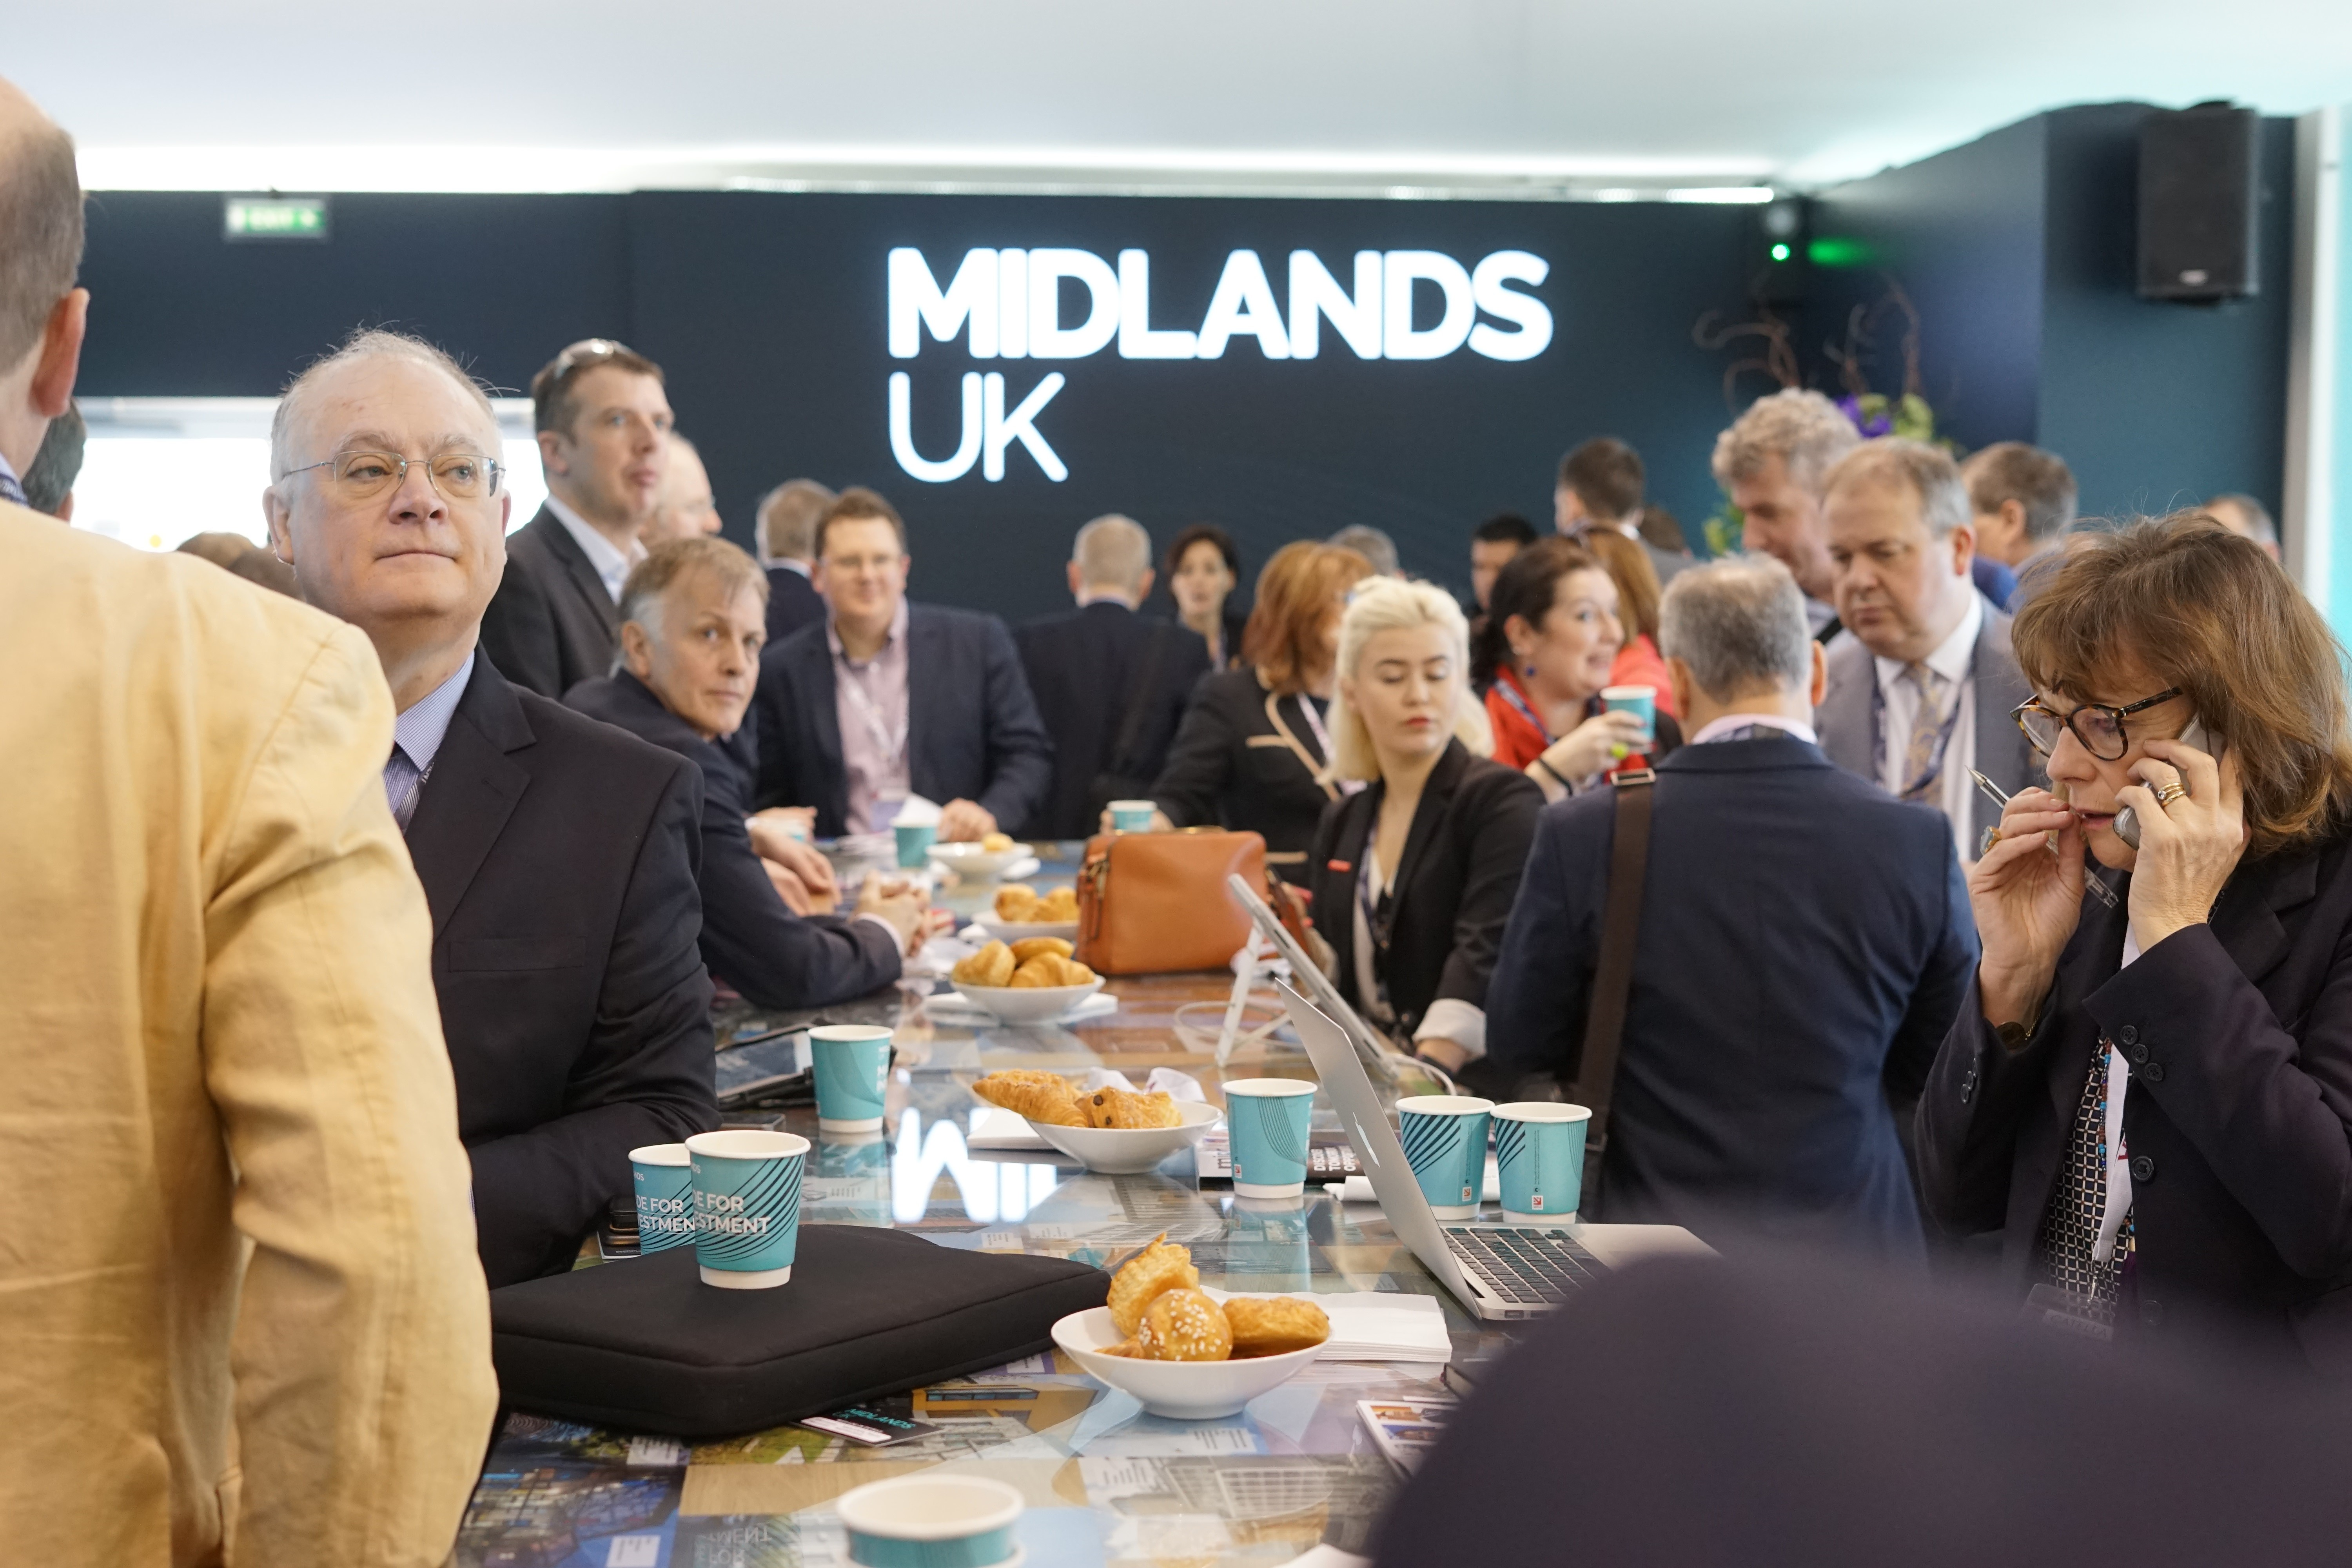 Midlands UK presents its success story to thousands at MIPIM 2018